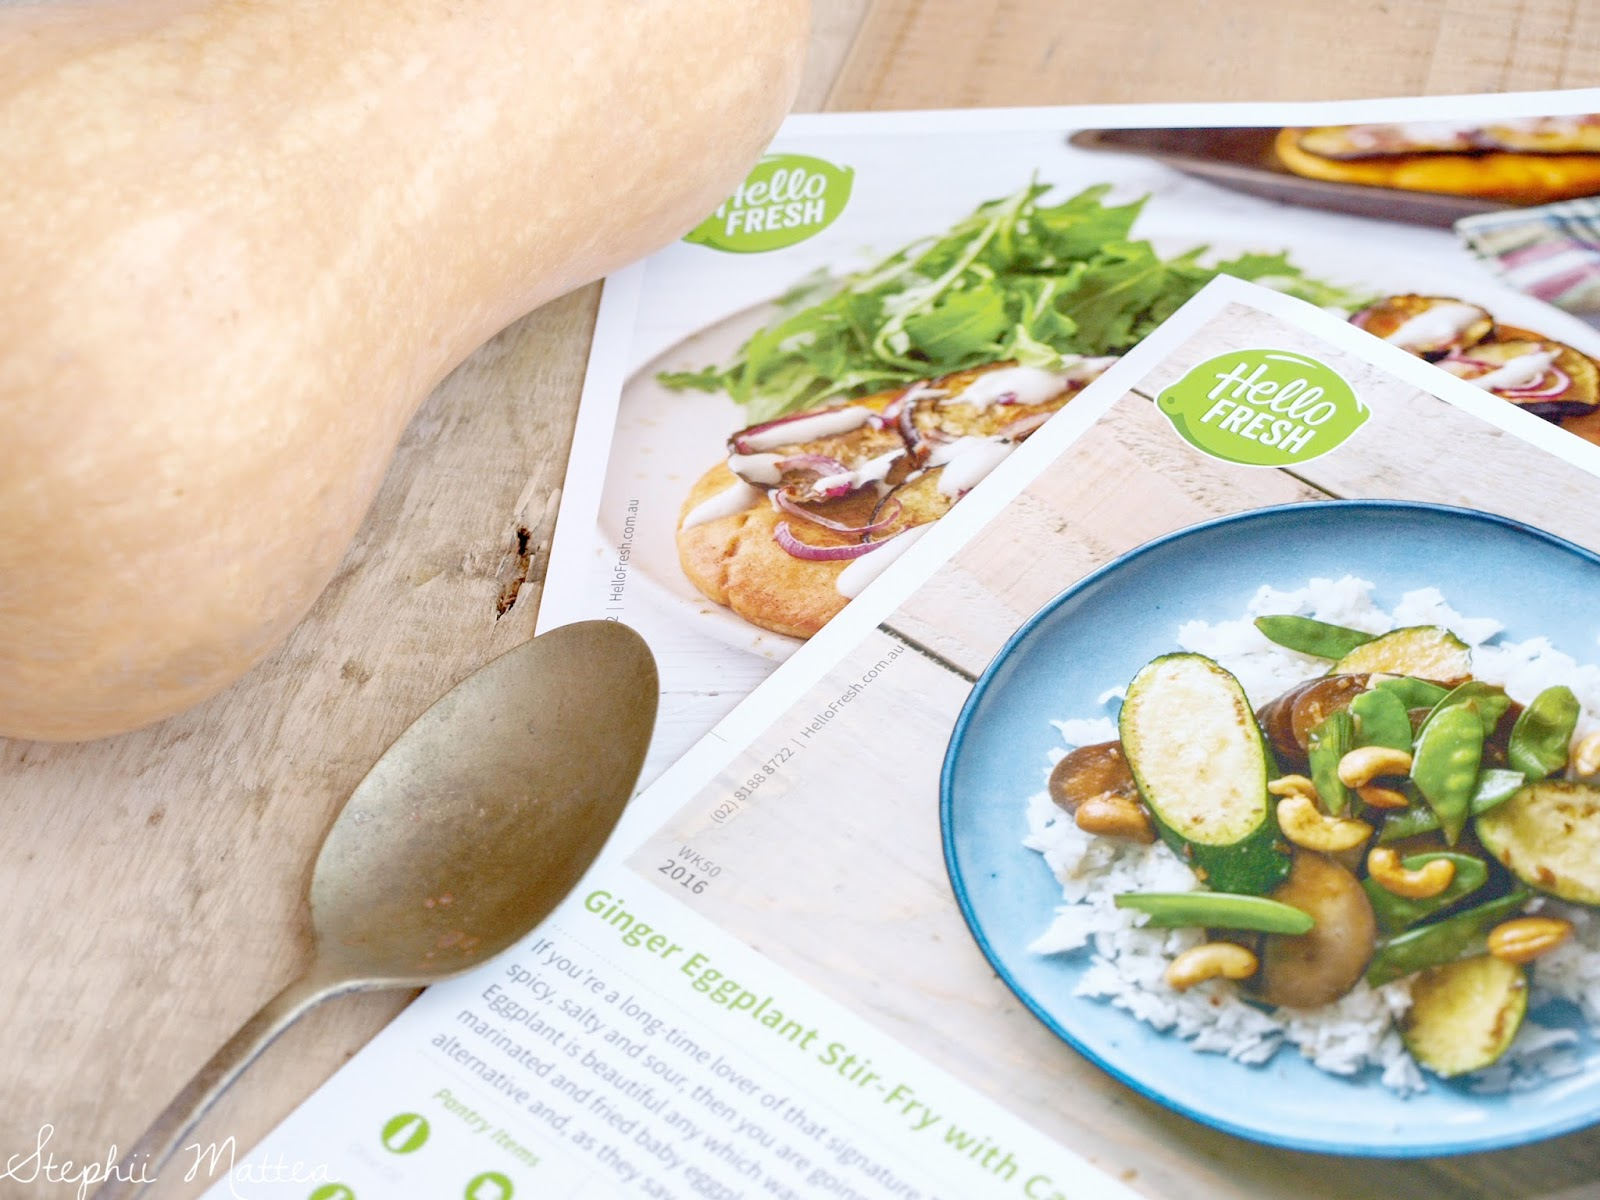 Hellofresh Meal Kit Delivery Service  Number